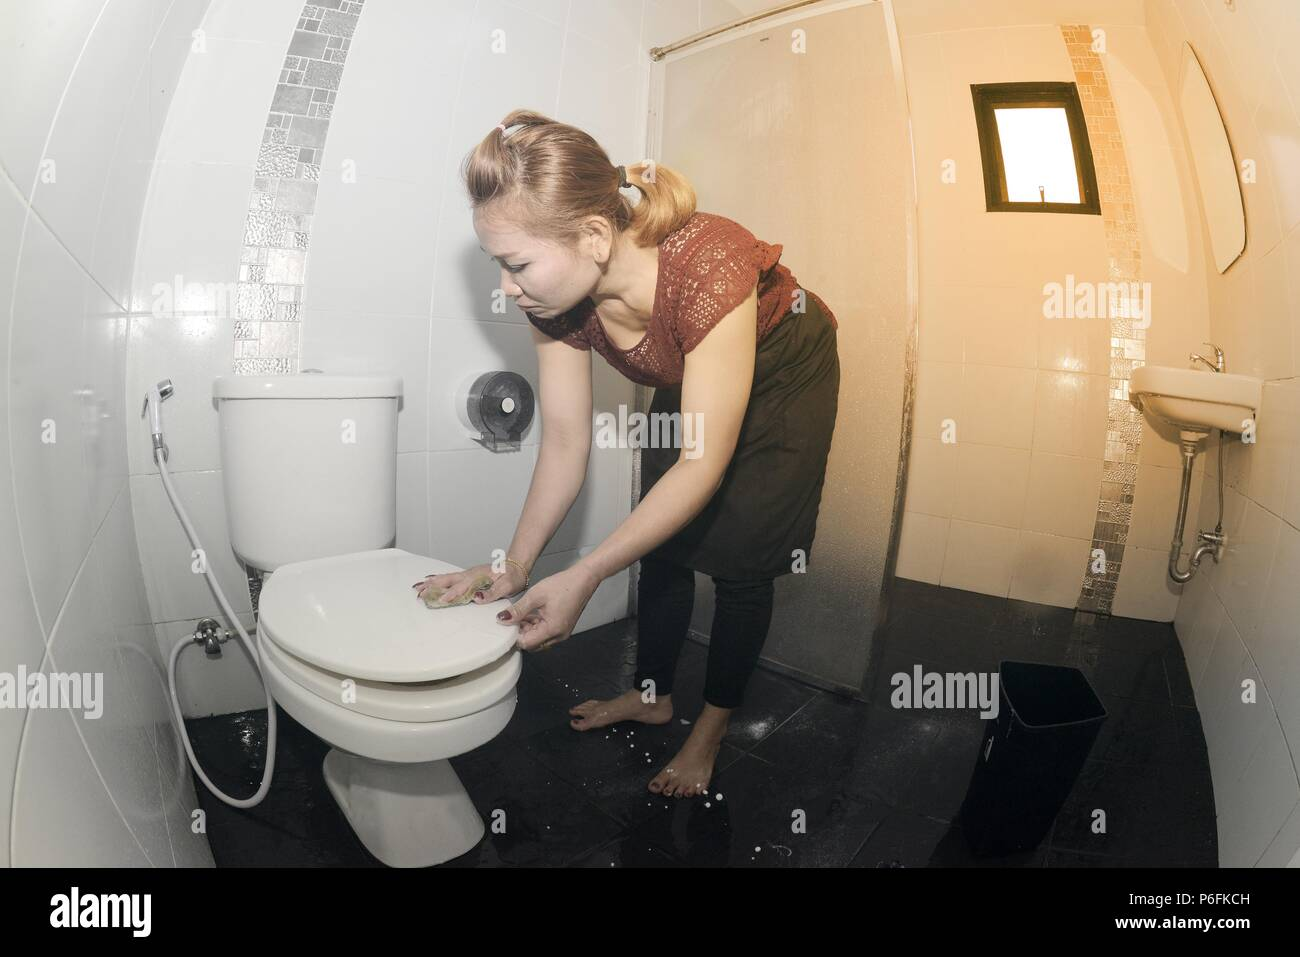 Asian maid or housekeeper cleaning on water closet in toilet. - Stock Image